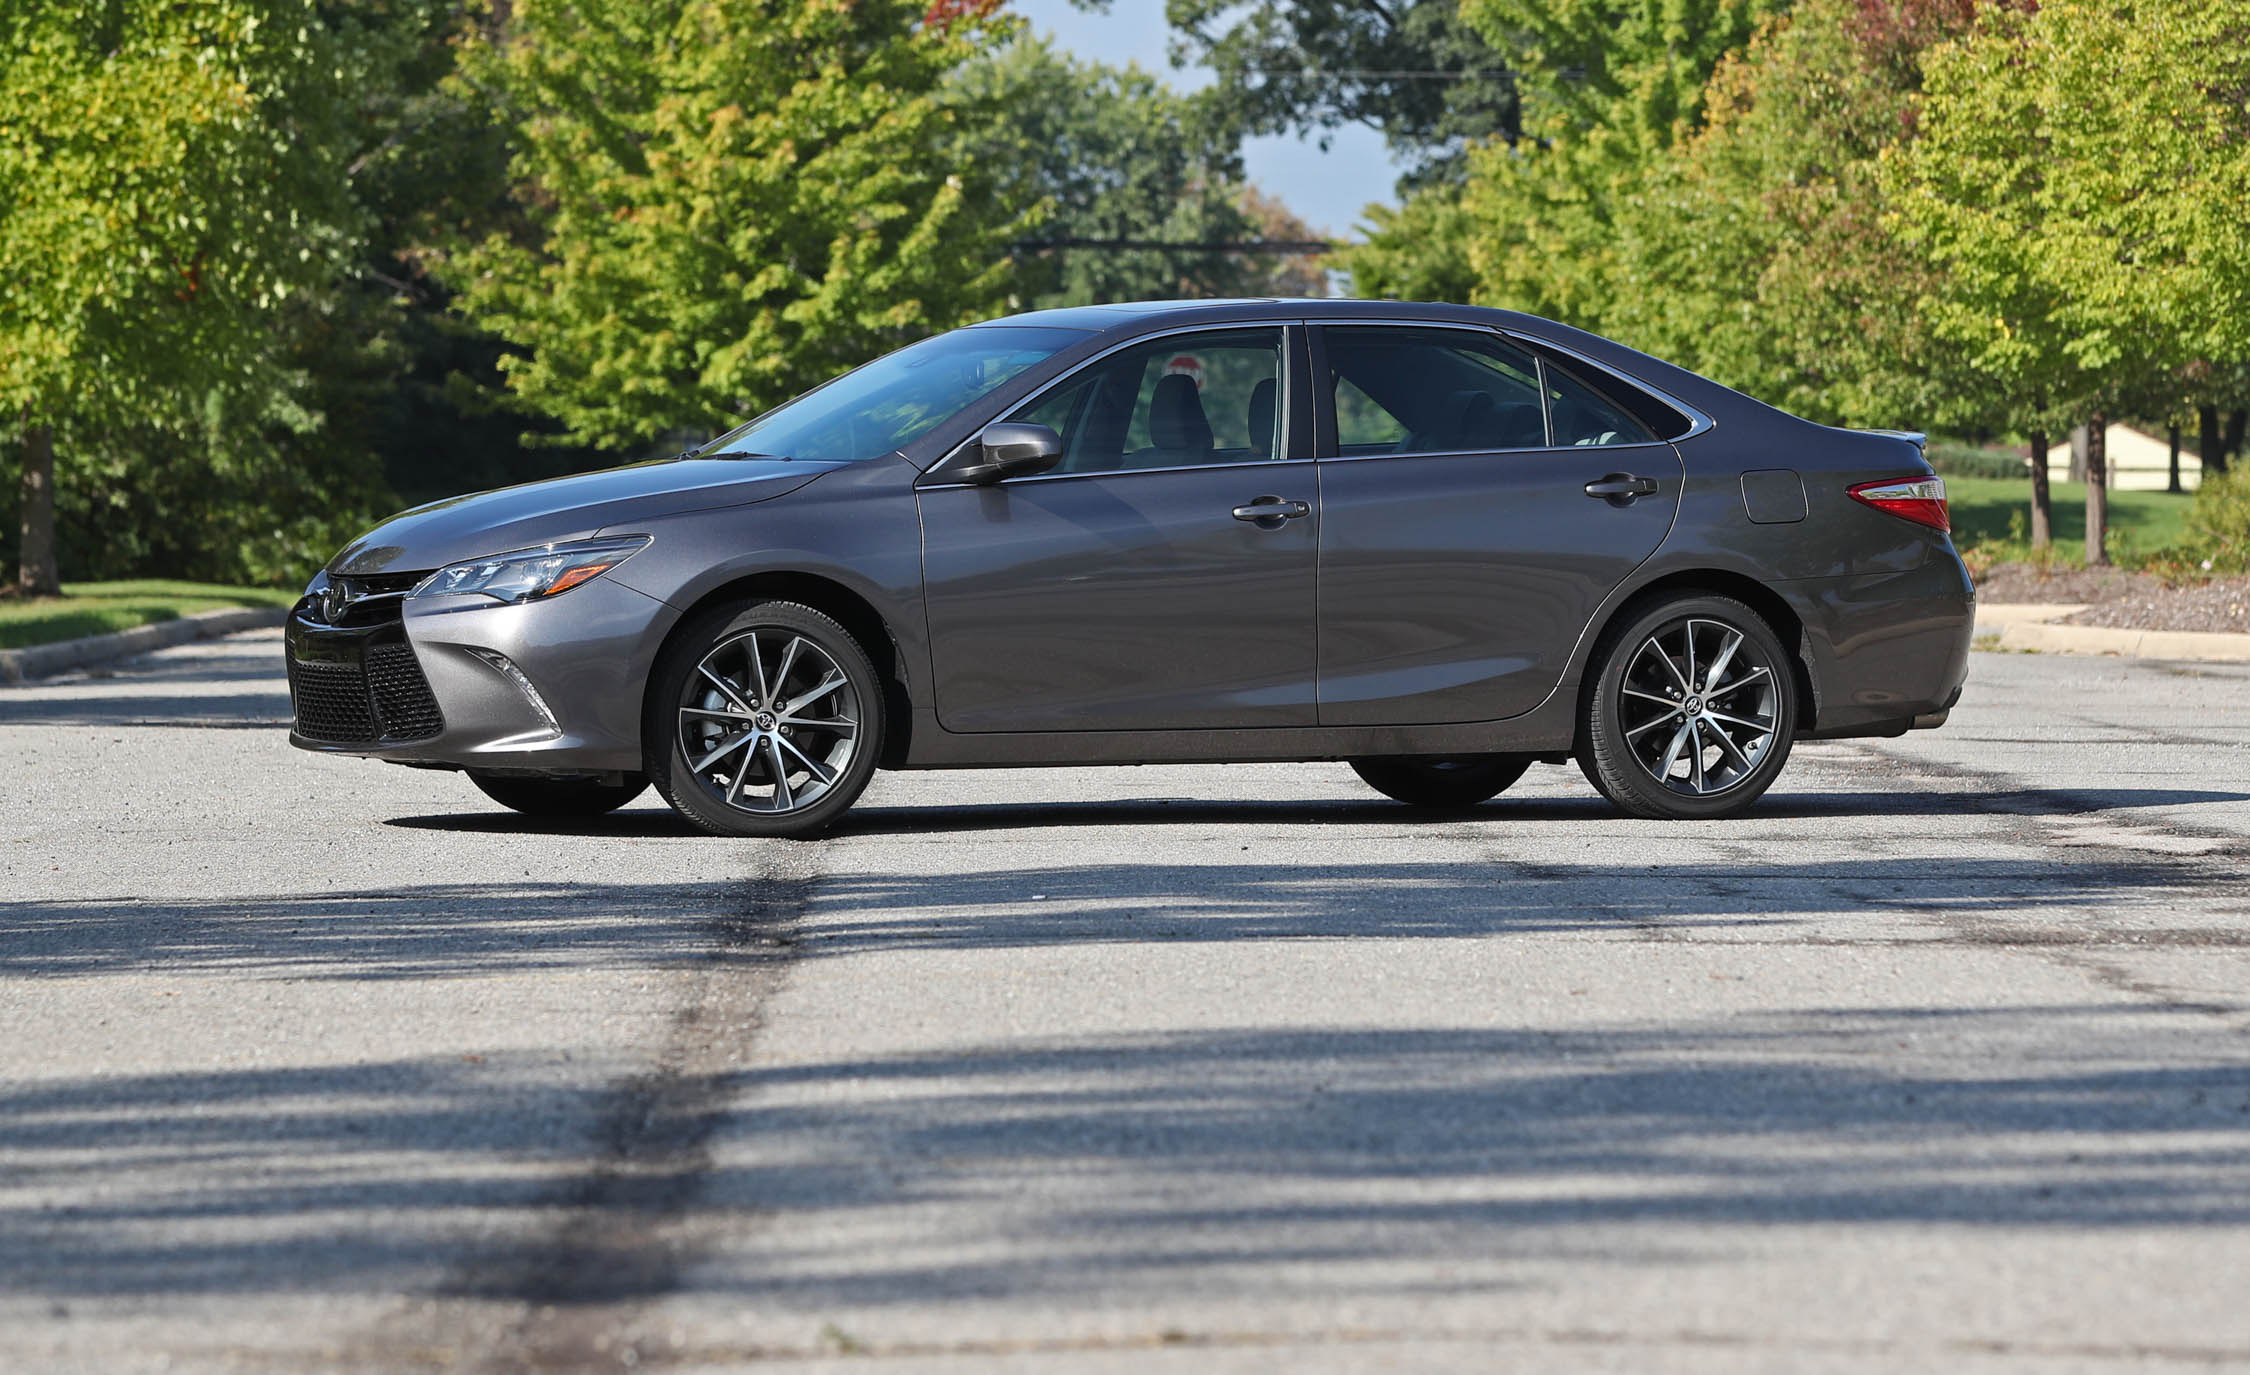 2017 Toyota Camry Exterior Grey Metallic (View 35 of 37)